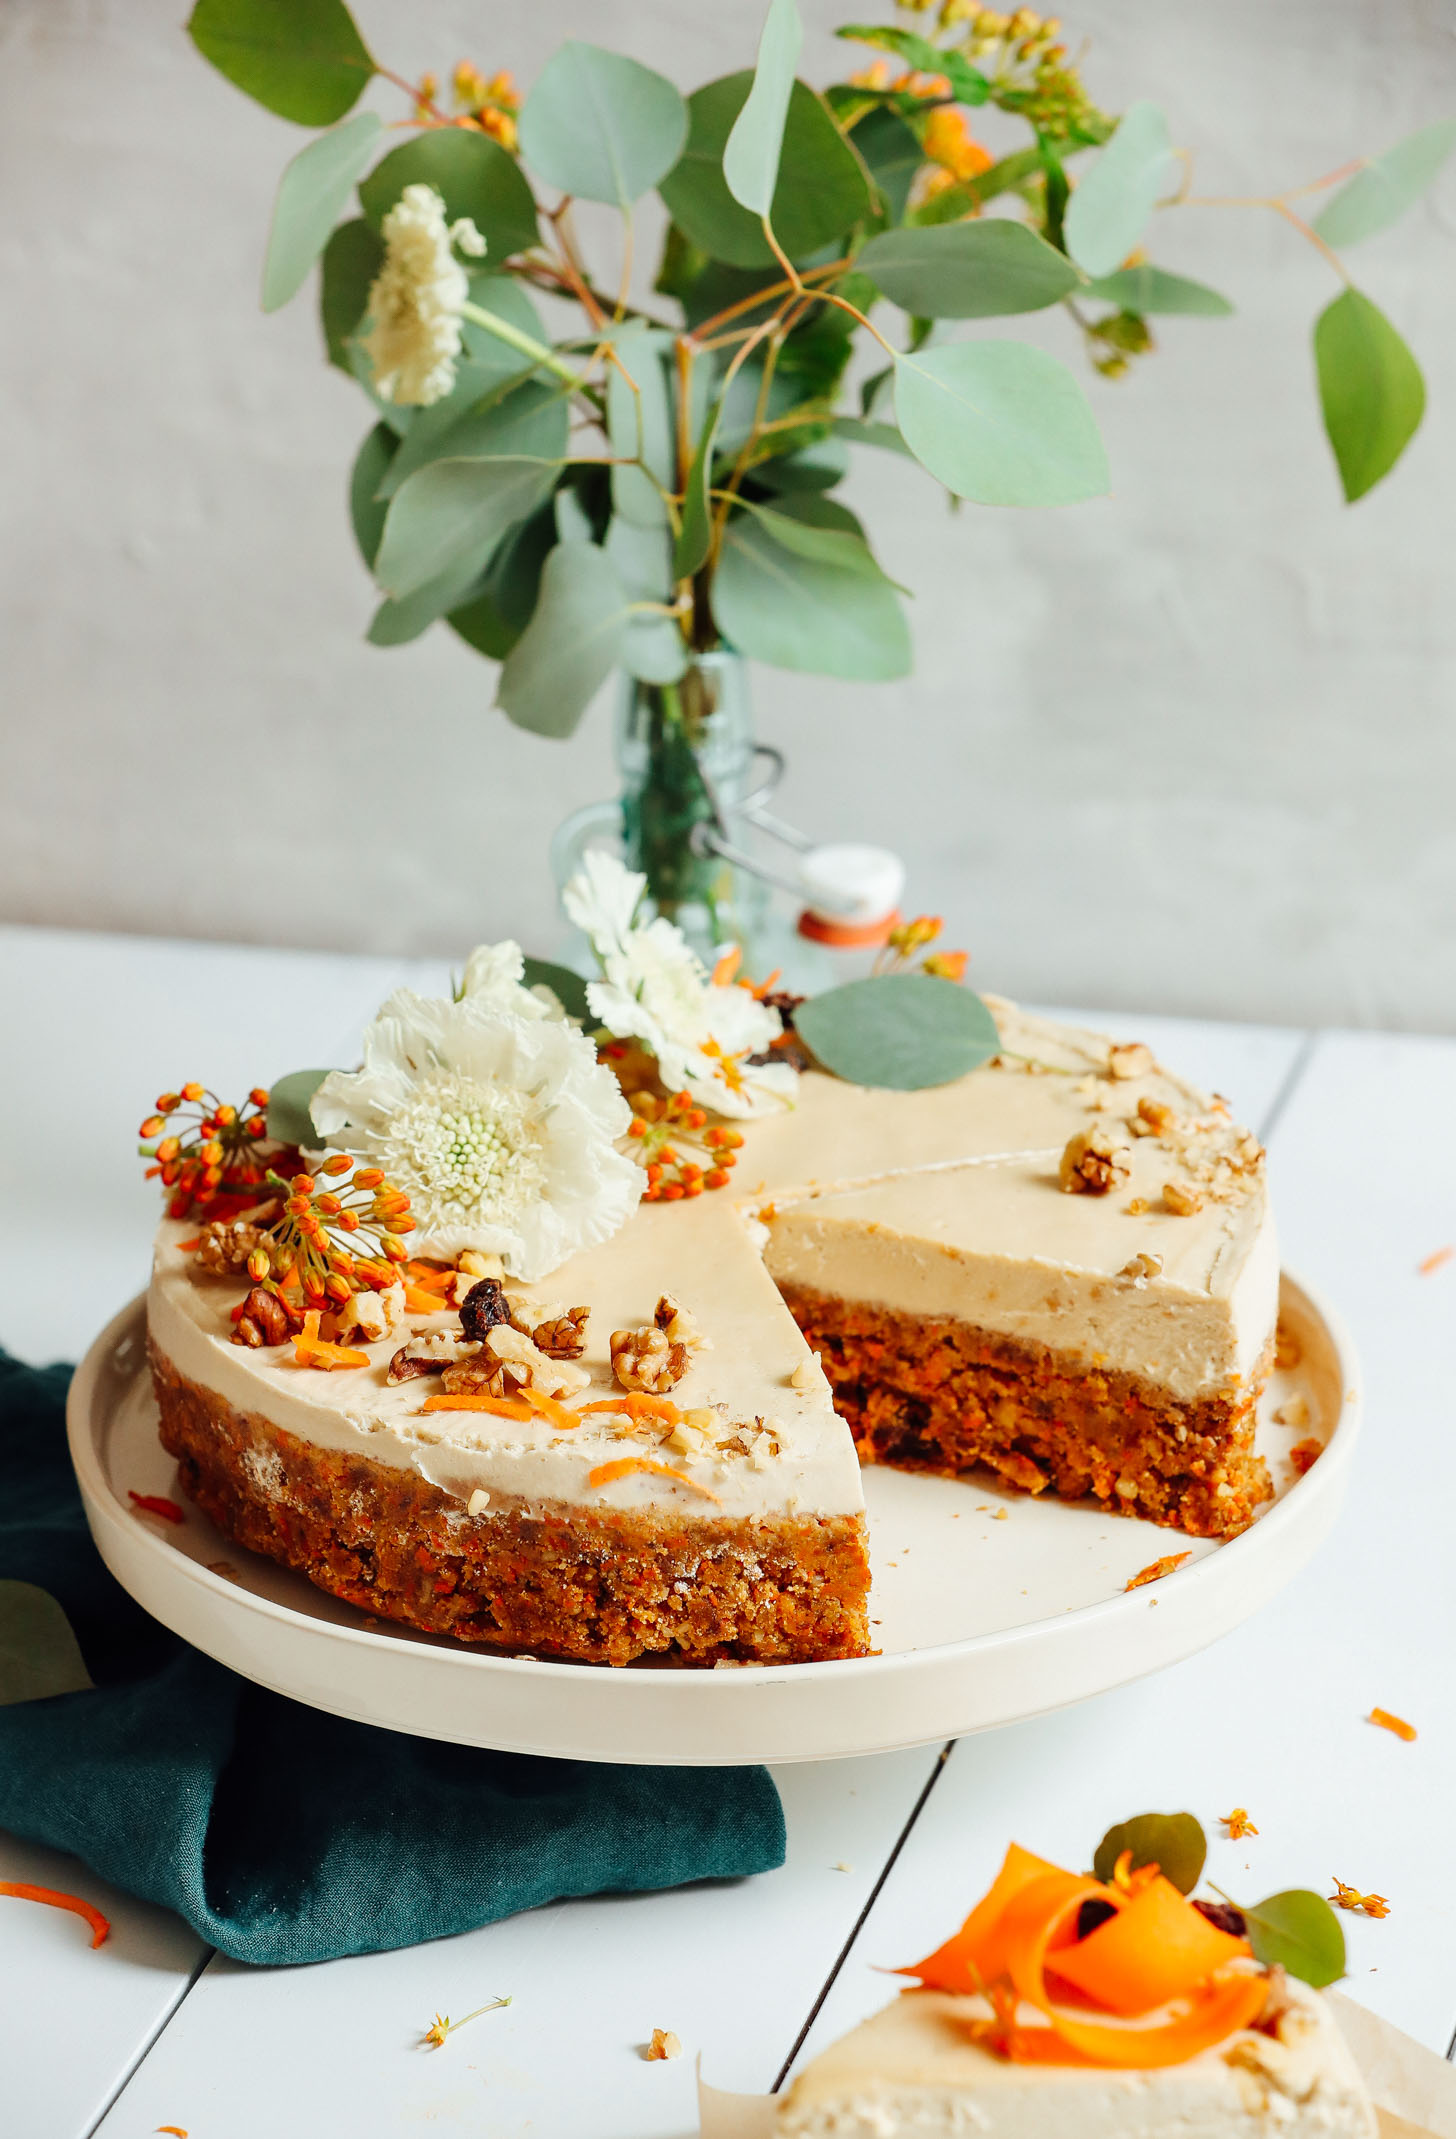 Kuchen Vegan Raw Carrot Cake With Vegan Cream Cheese Frosting